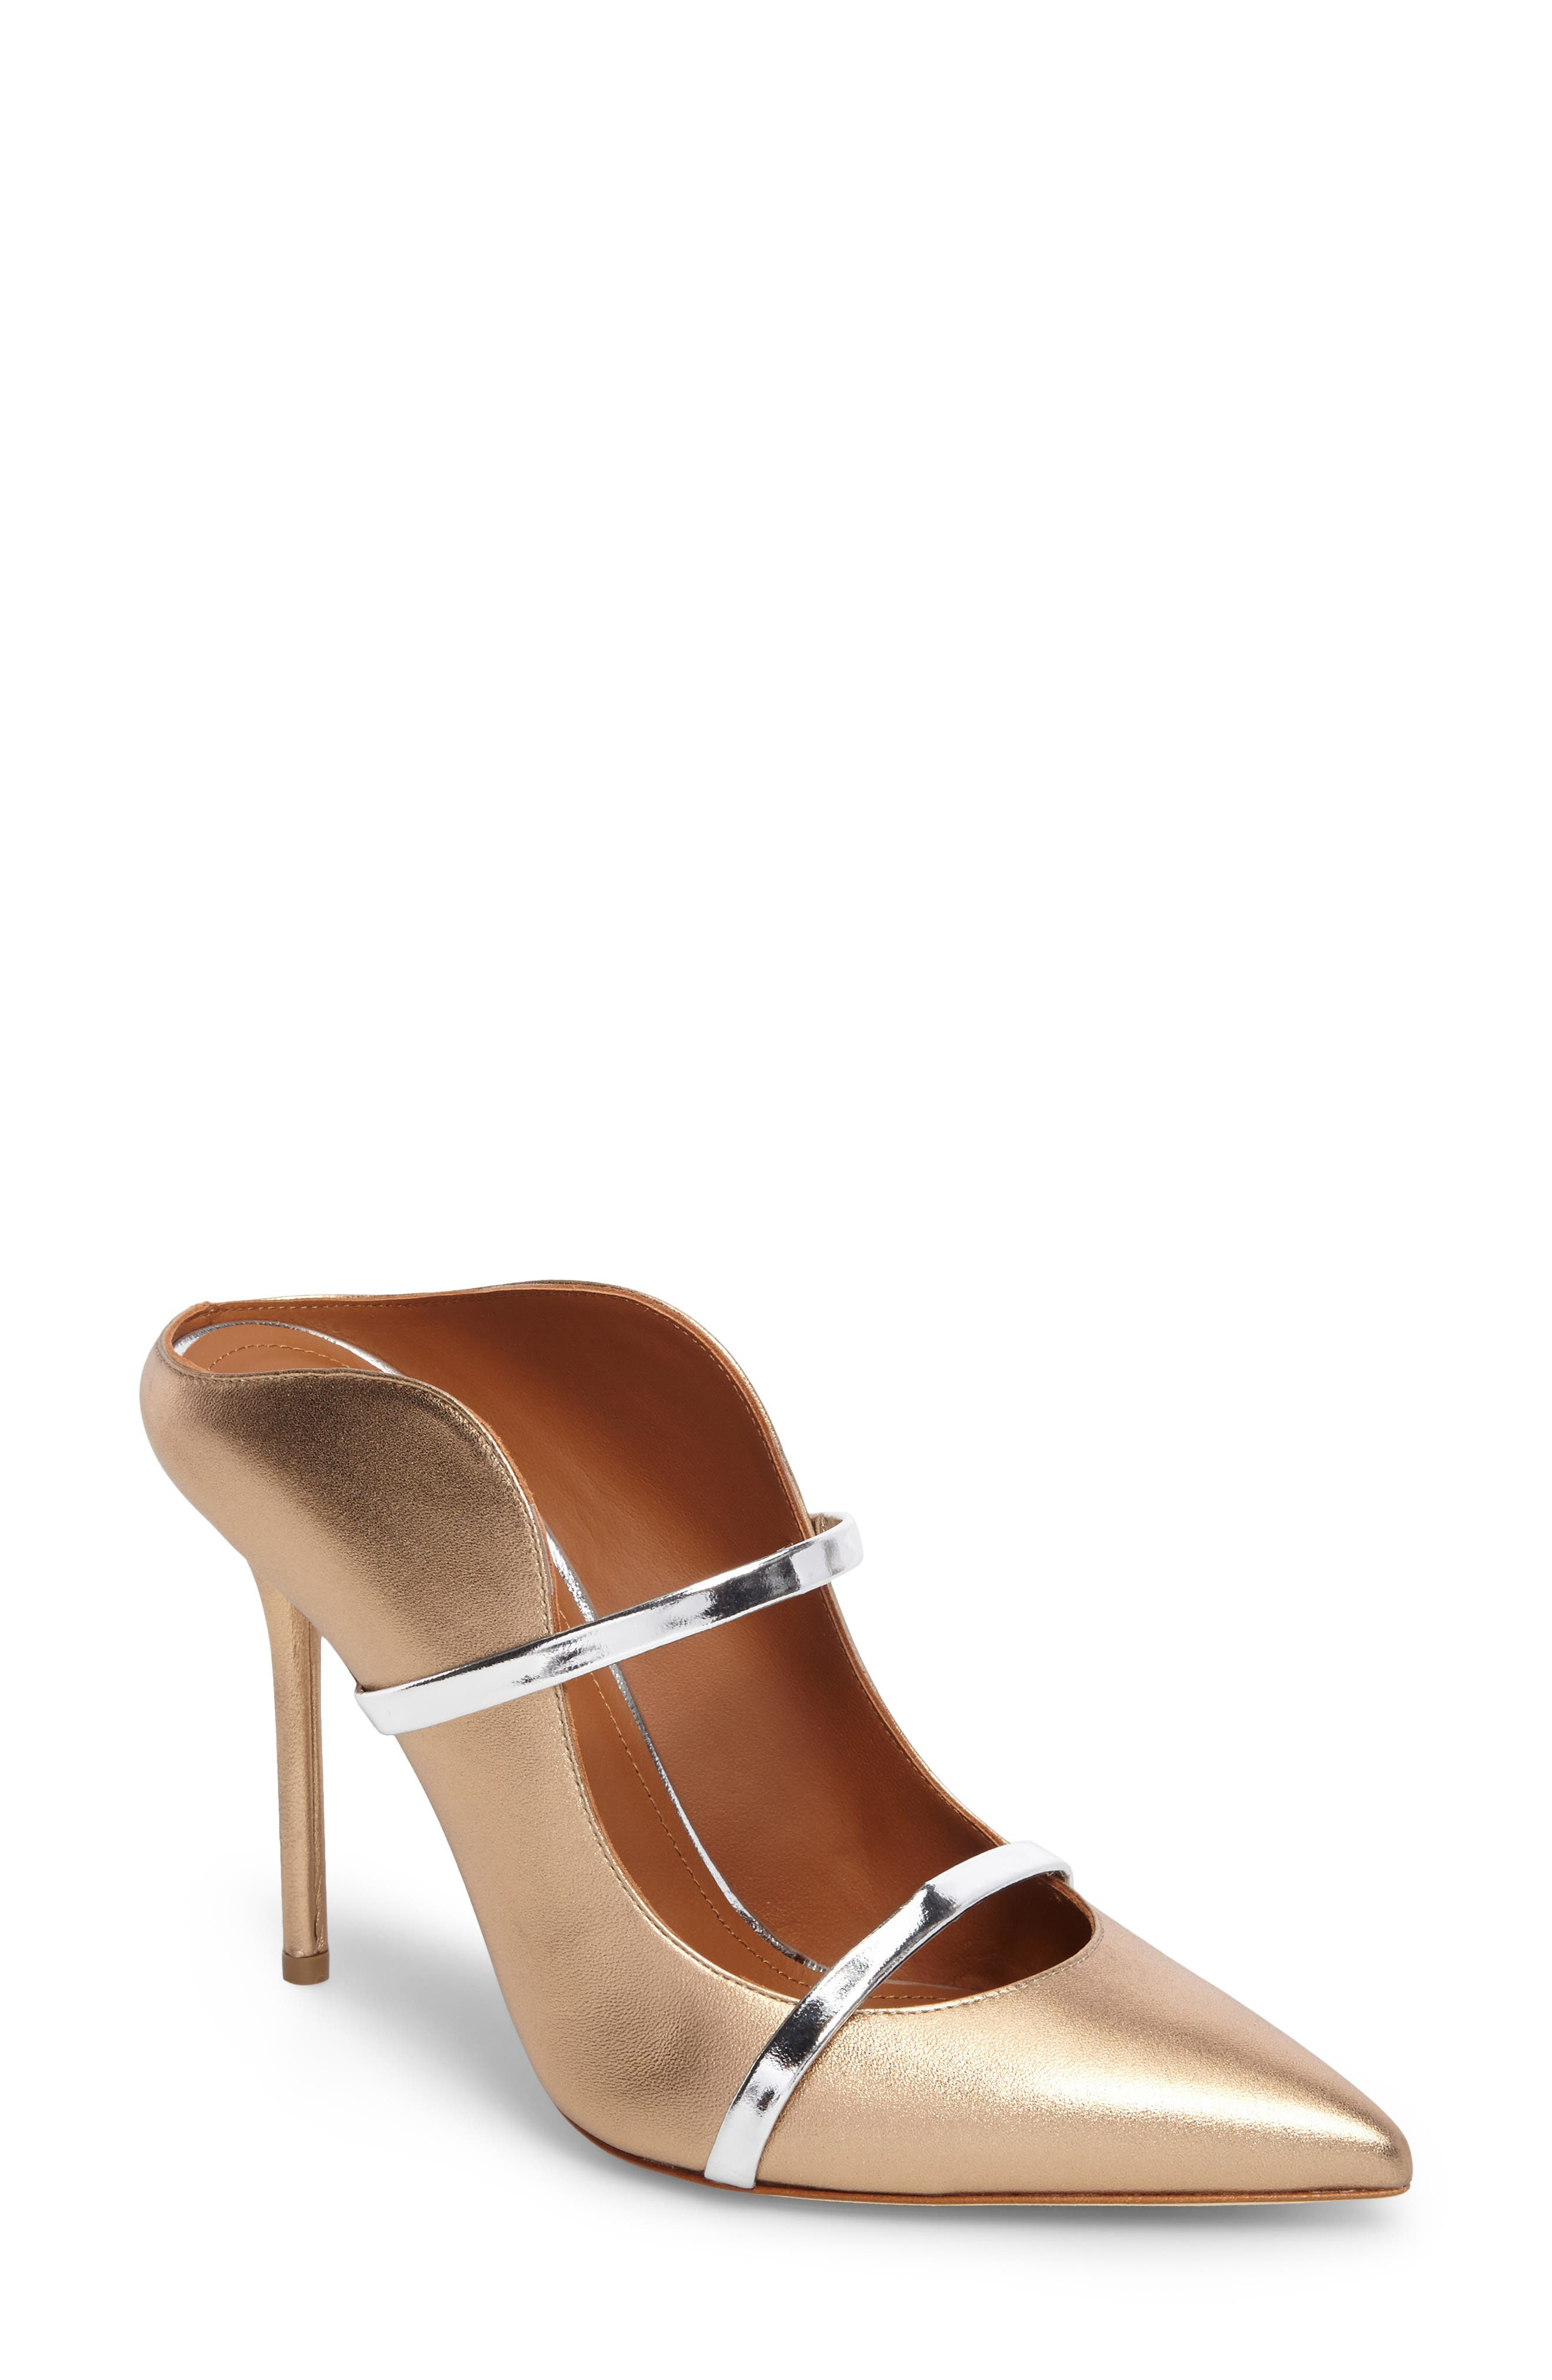 Maureen Double Band Mule,                         Main,                         color, Gold/ Silver